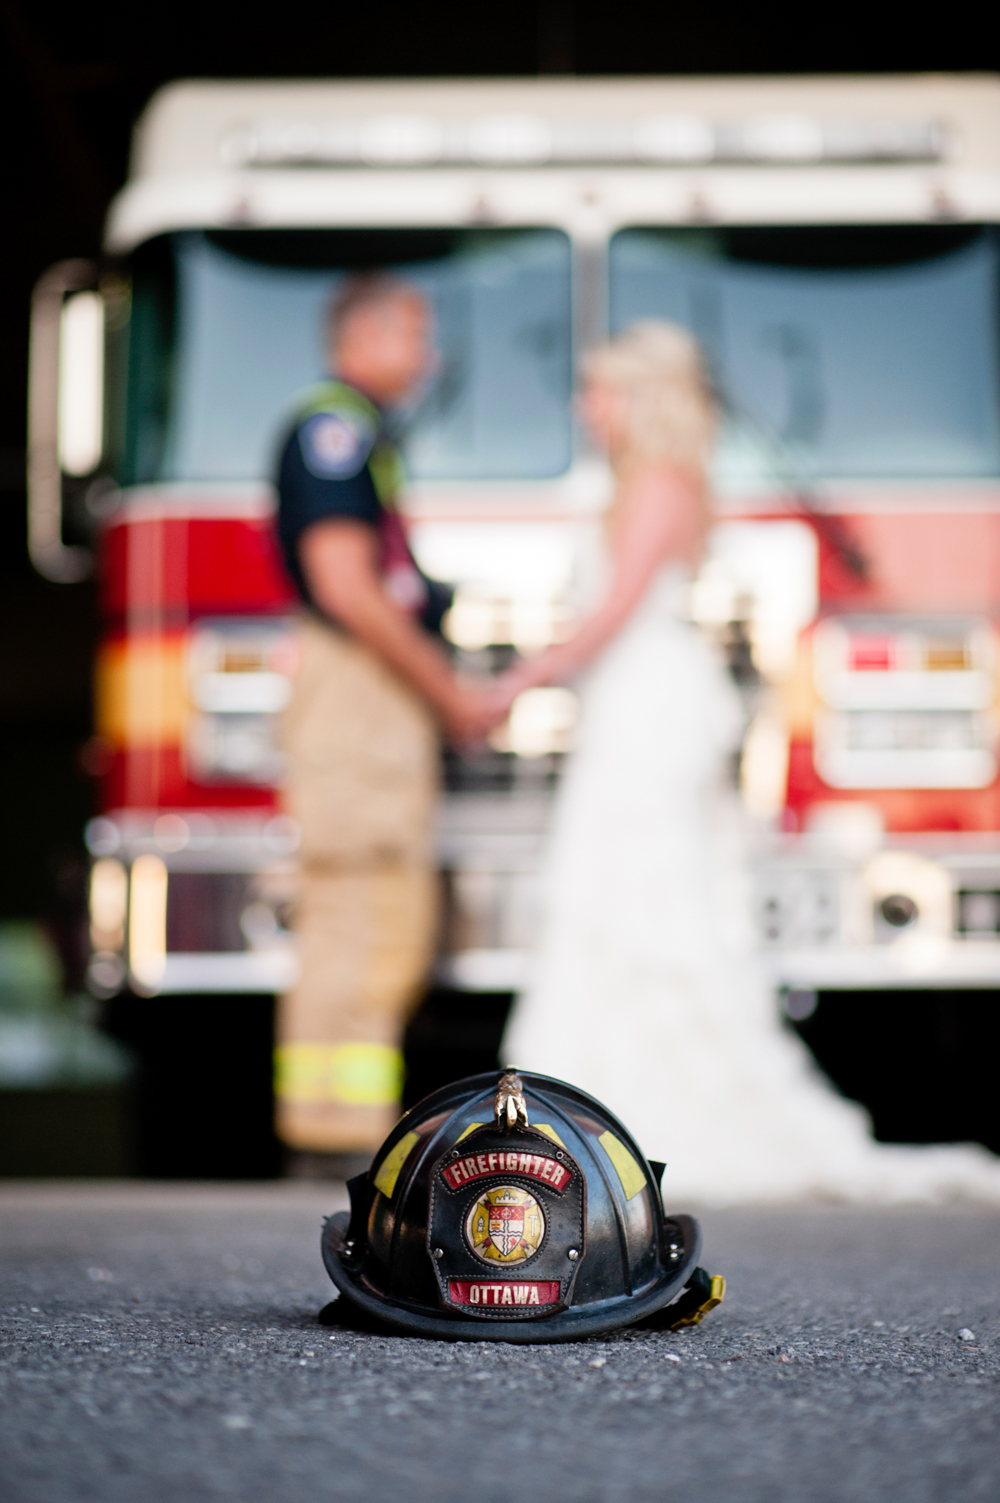 black-lamb-photography-ottawa-wedding-photographer-fire-fighter-themed-wedding-shoot-50